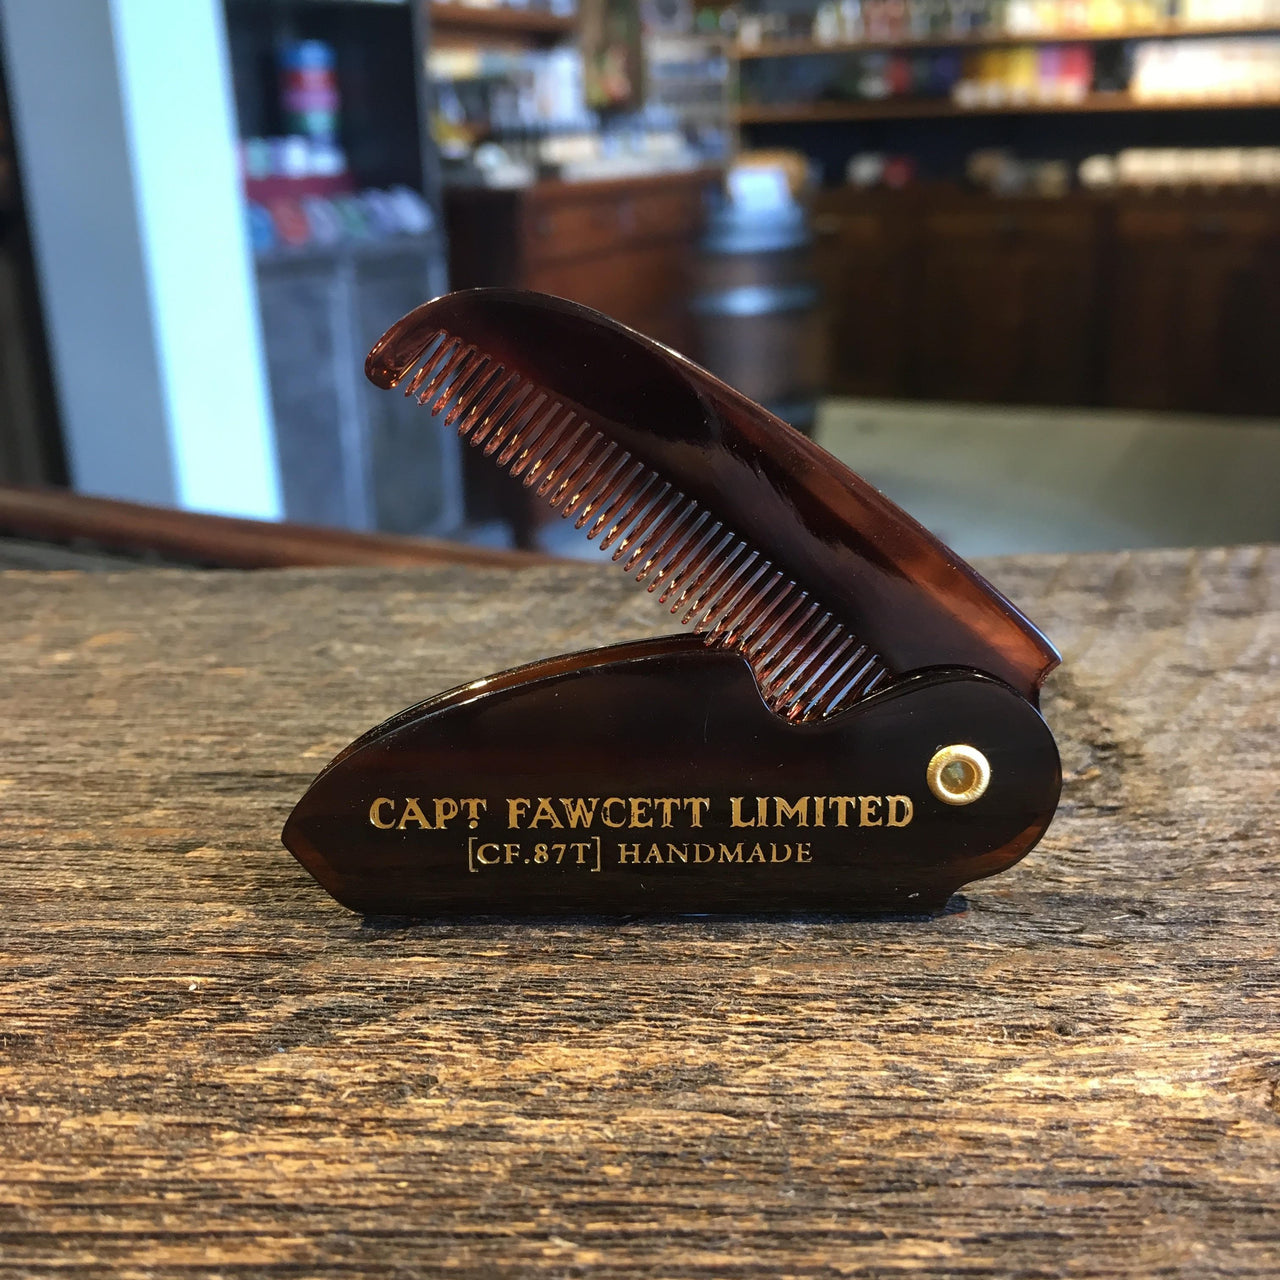 captain fawcett 39 s folding pocket moustache comb 117mm from captain fawcett kent of inglewood. Black Bedroom Furniture Sets. Home Design Ideas